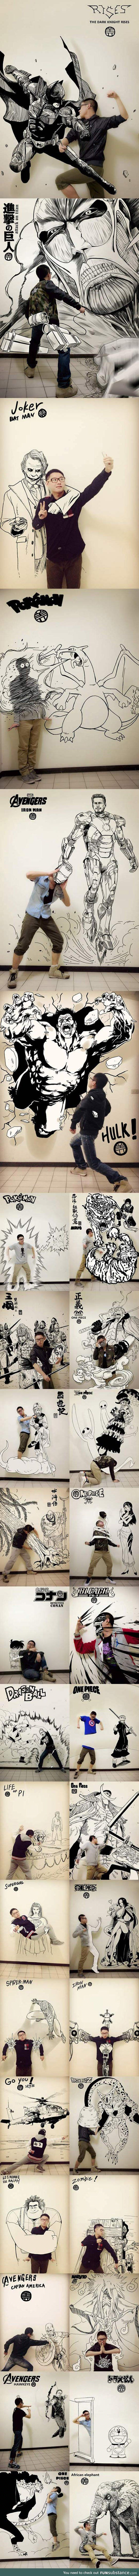 Epic asian man draws himself with comic book characters